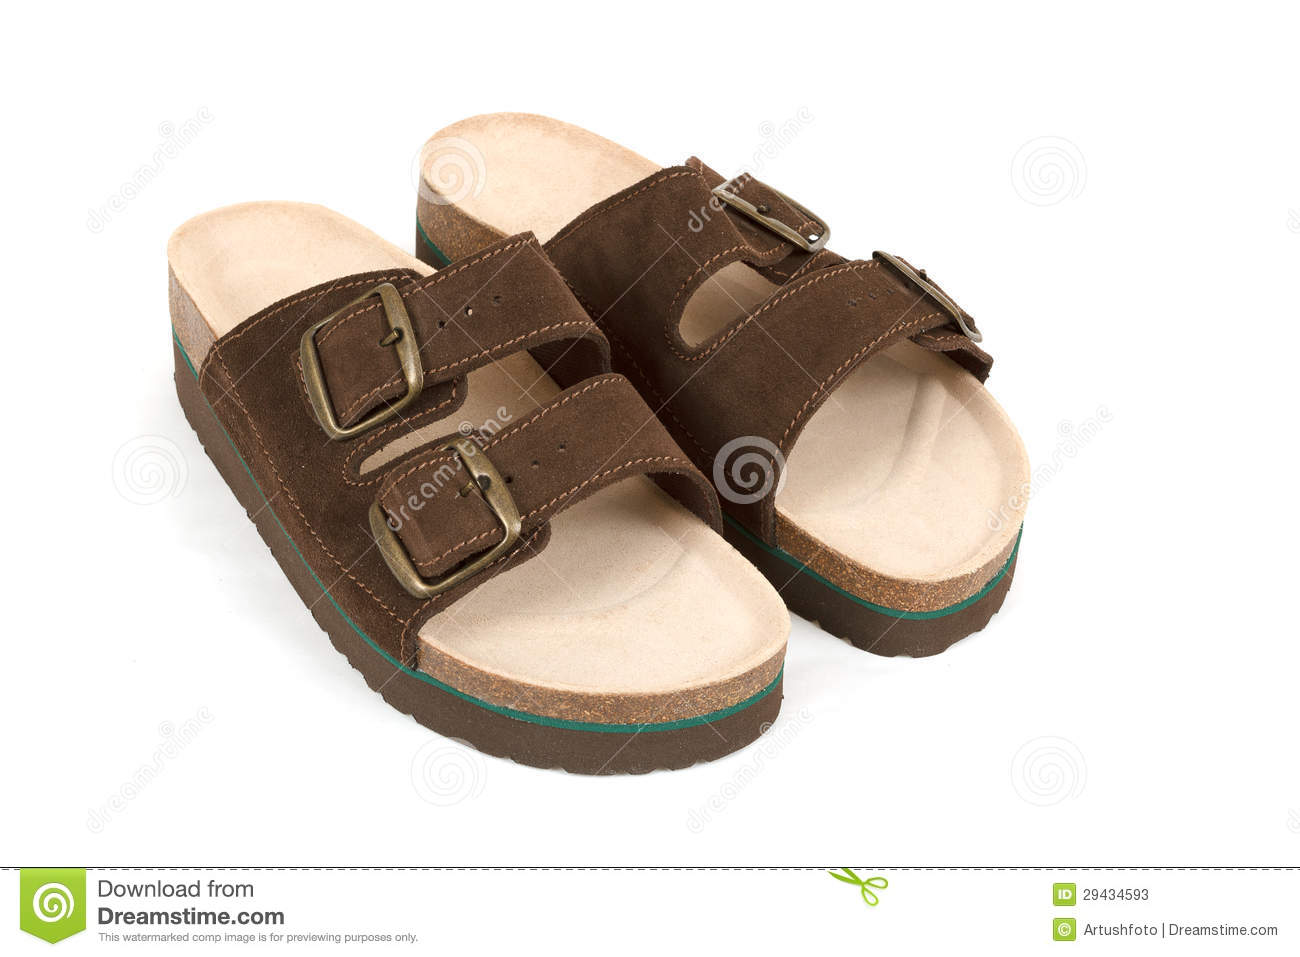 6616d84ab6770 New Men s Sandals Isolated On White Stock Image - Image of nobody ...